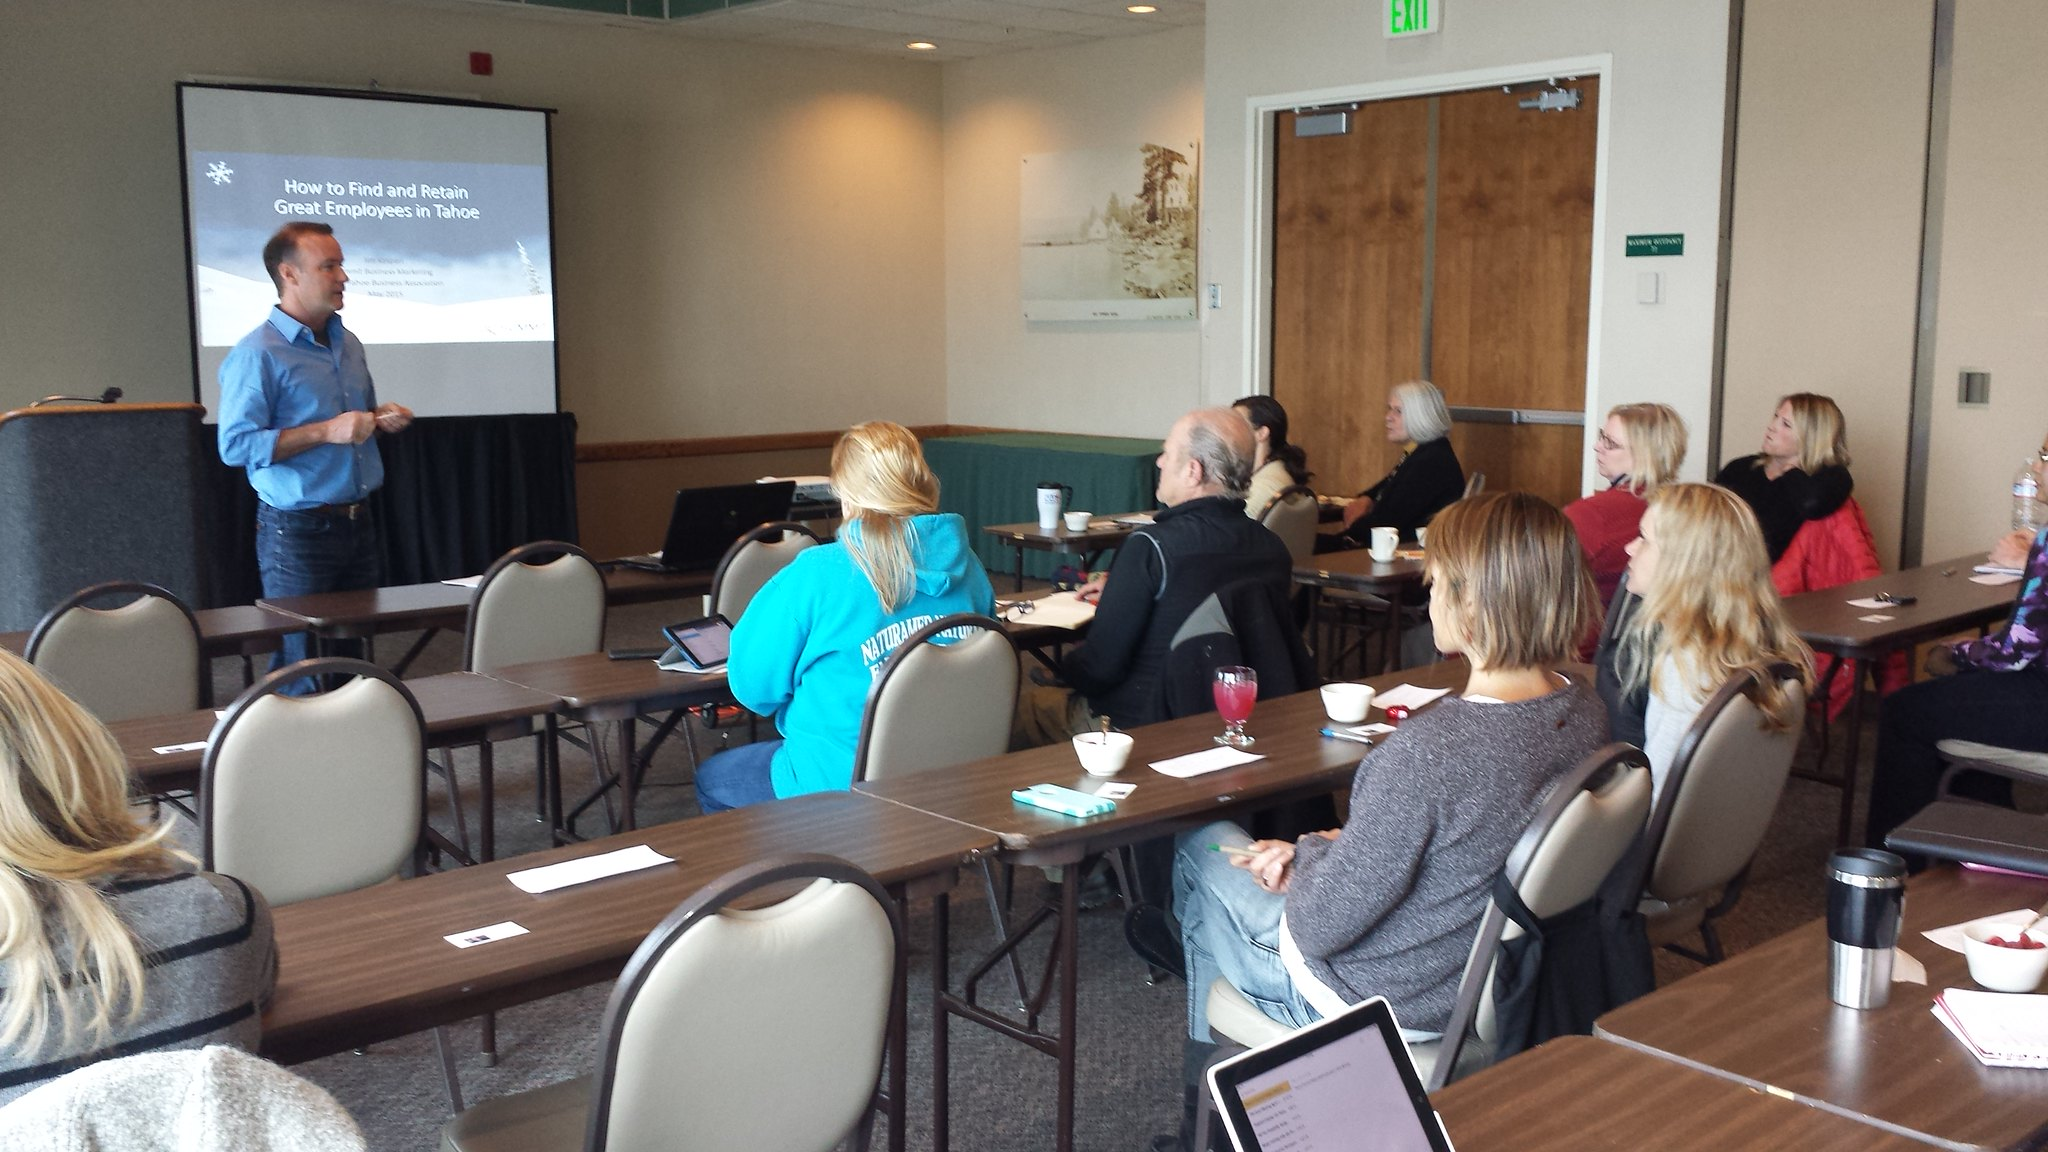 North Tahoe Business Association Small Business Seminars on May 7, 2015 How to Find and Retain Great Employees in North Lake Tahoe Reno areas 17 people got great tips and secrets from speaker Jim Kaspari of PEAK Business Coaching.